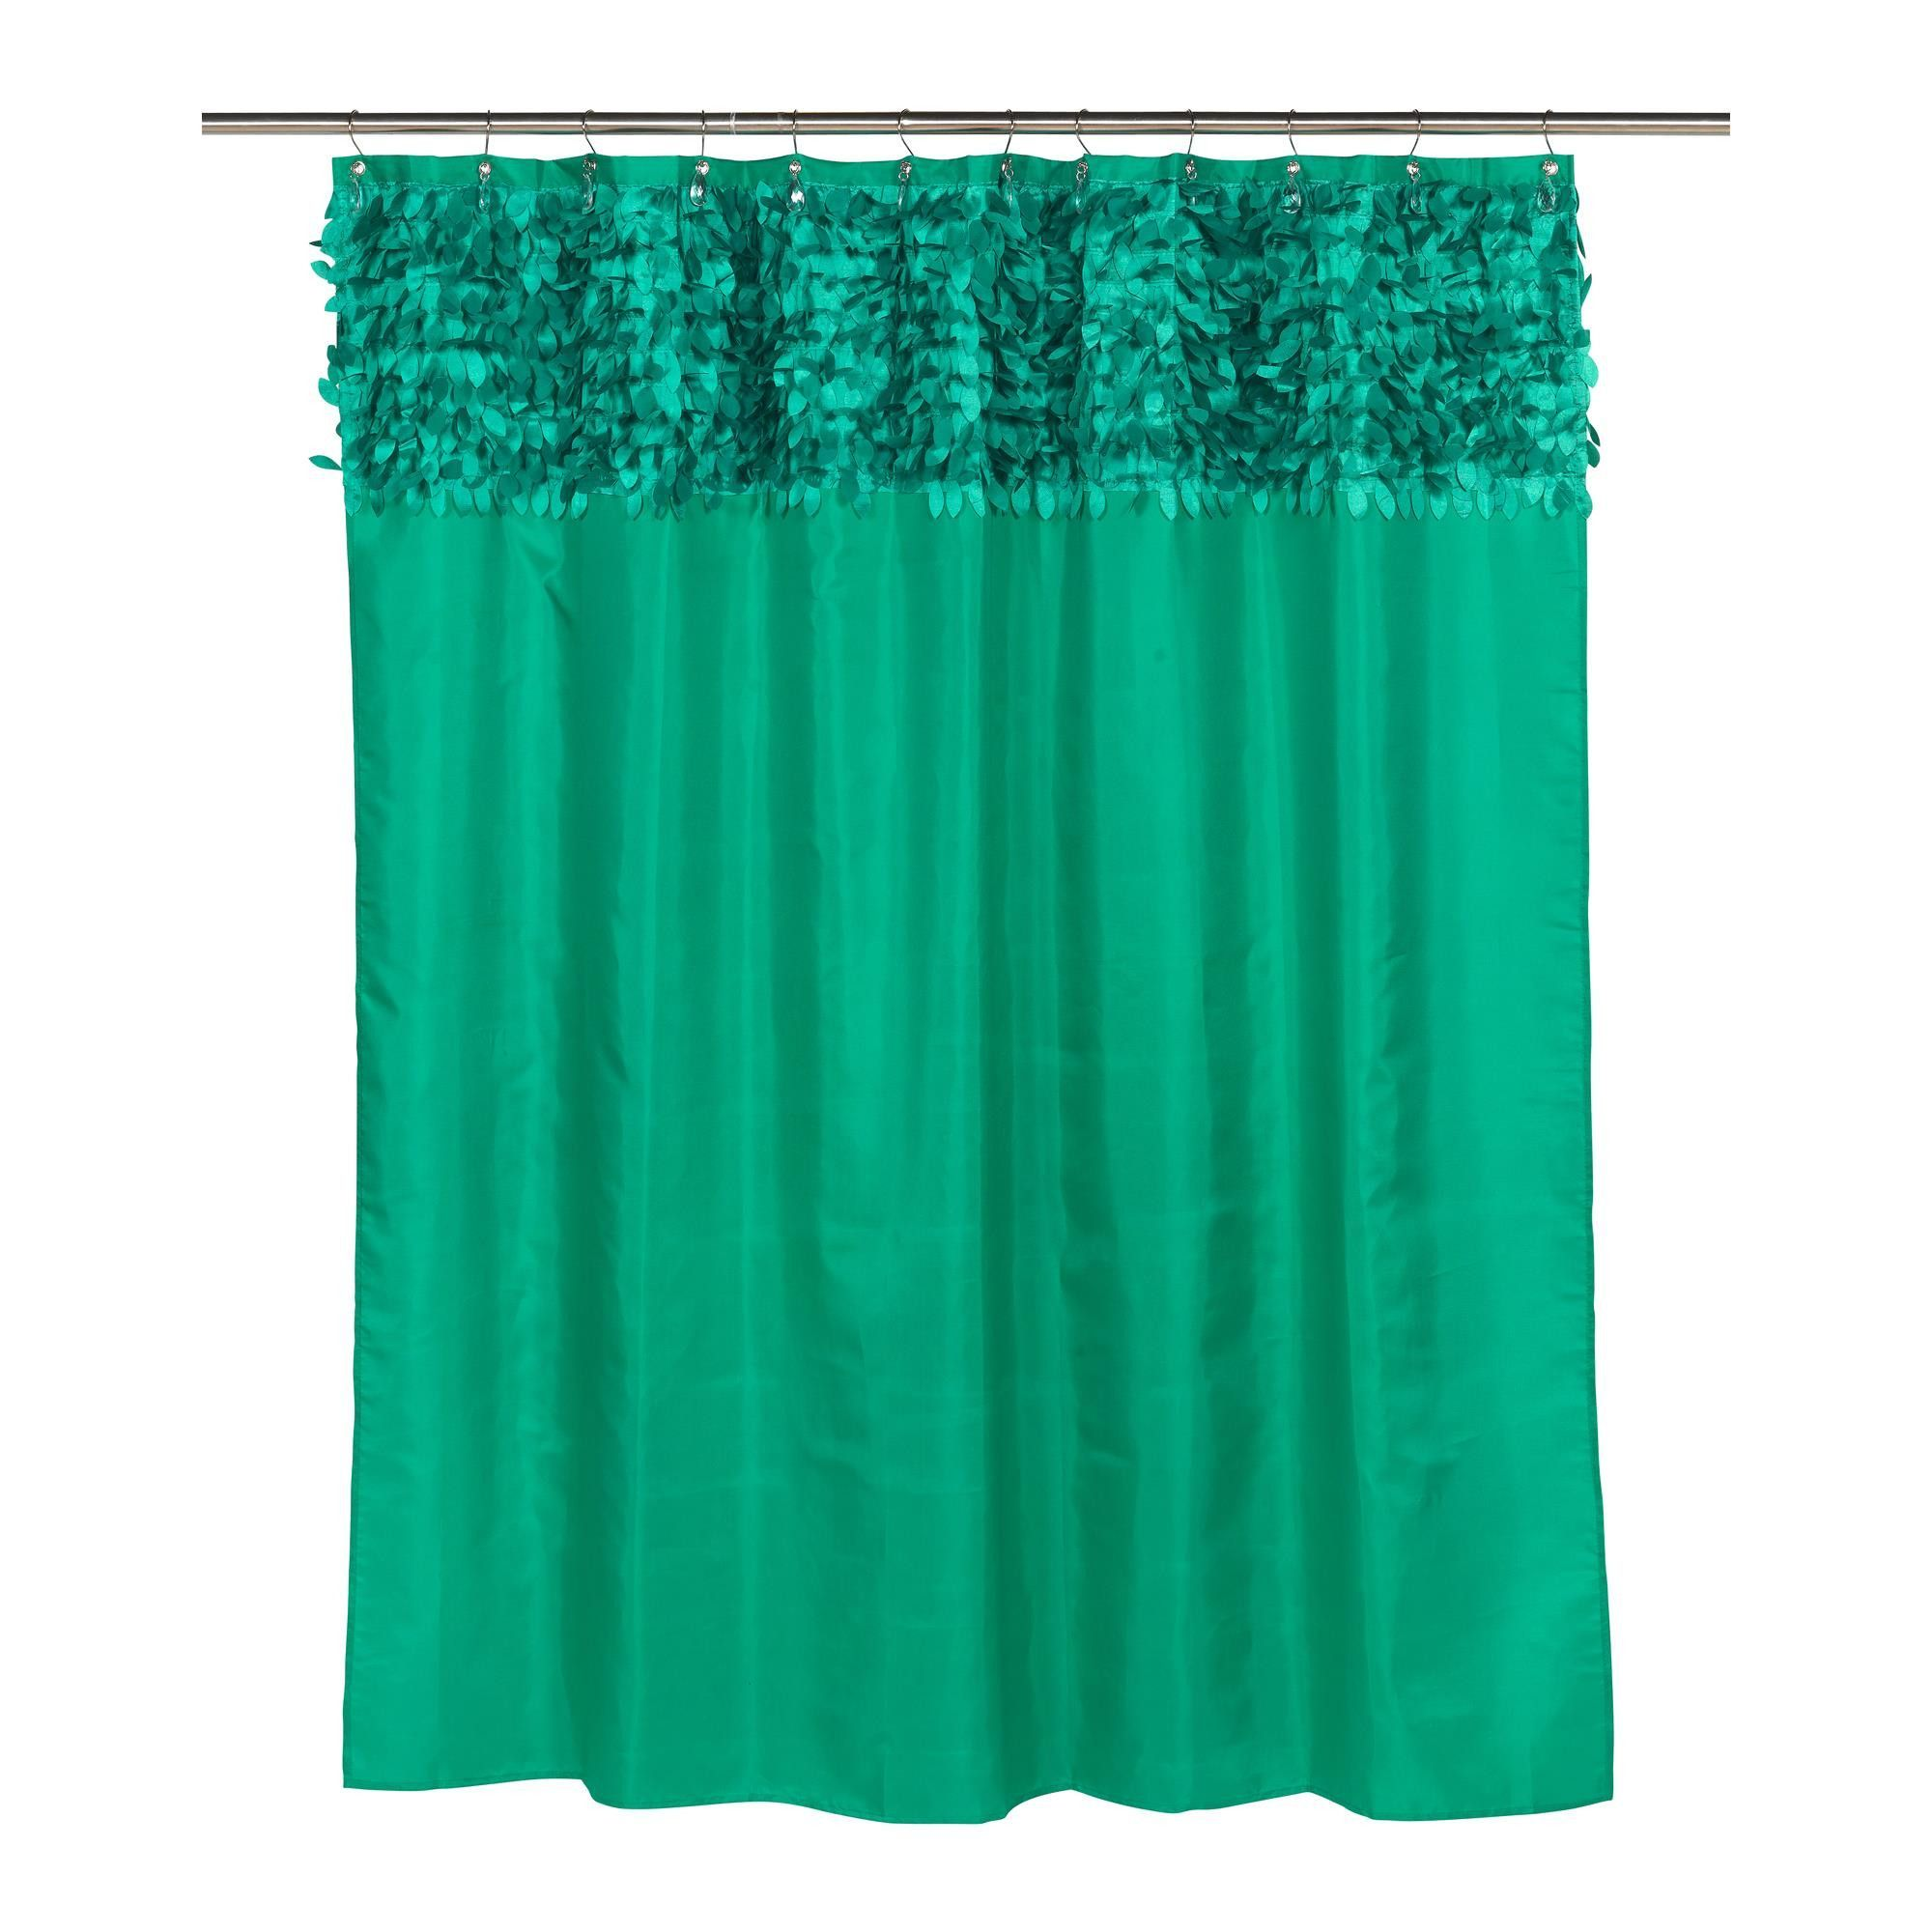 Contemporary Shower Curtain Abstract Art Bathroom Decor Lime Green And Warm Gray Waterproof Fabric Green Shower Curtains Gray Shower Curtains Contemporary Shower